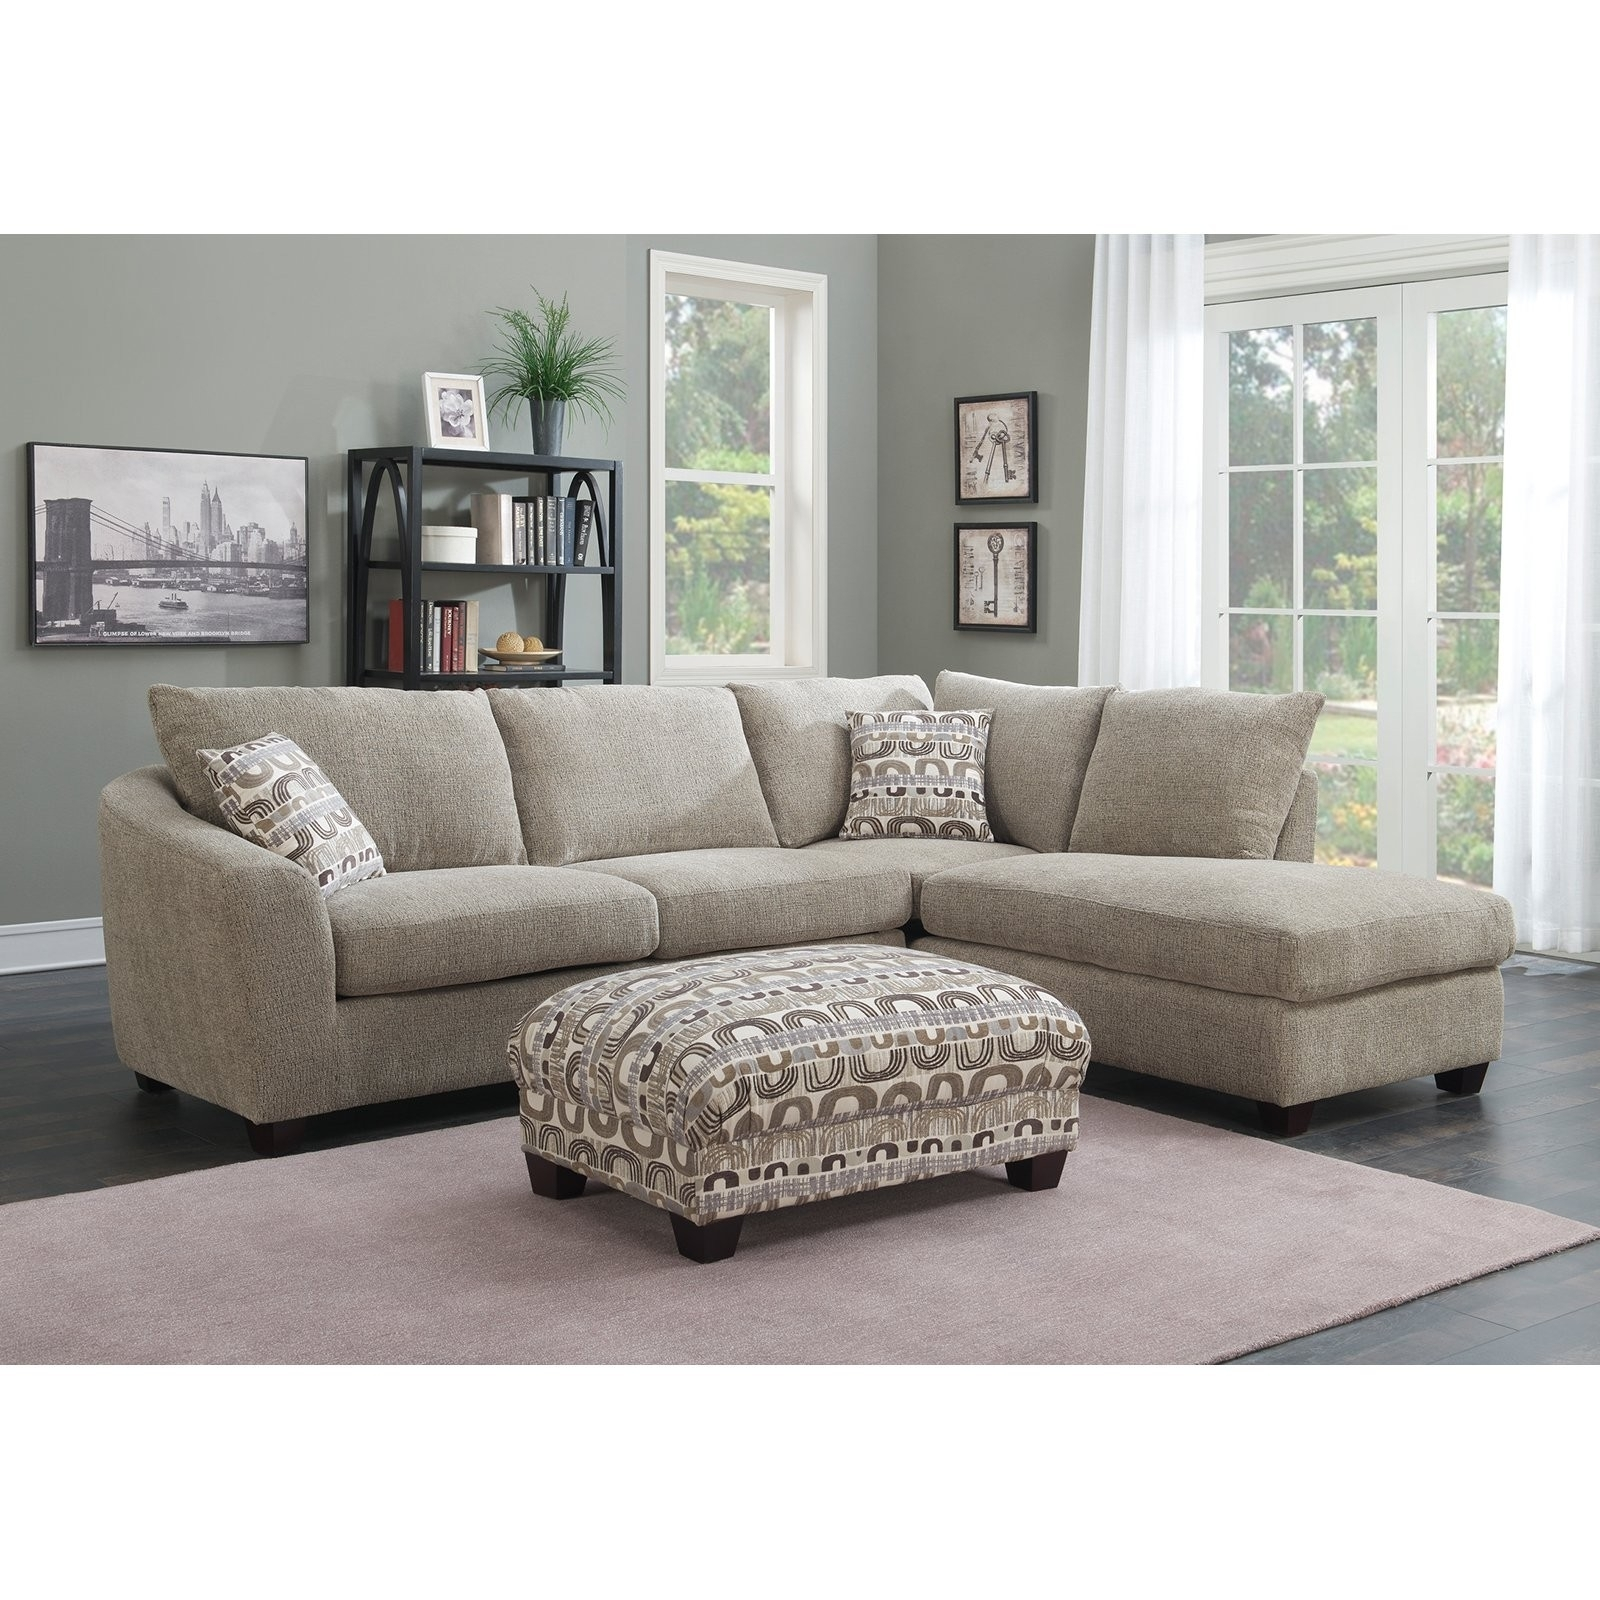 2 Piece Sectional With Chaise Avery W Laf Armless Living Spaces With Regard To Avery 2 Piece Sectionals With Raf Armless Chaise (Image 1 of 25)